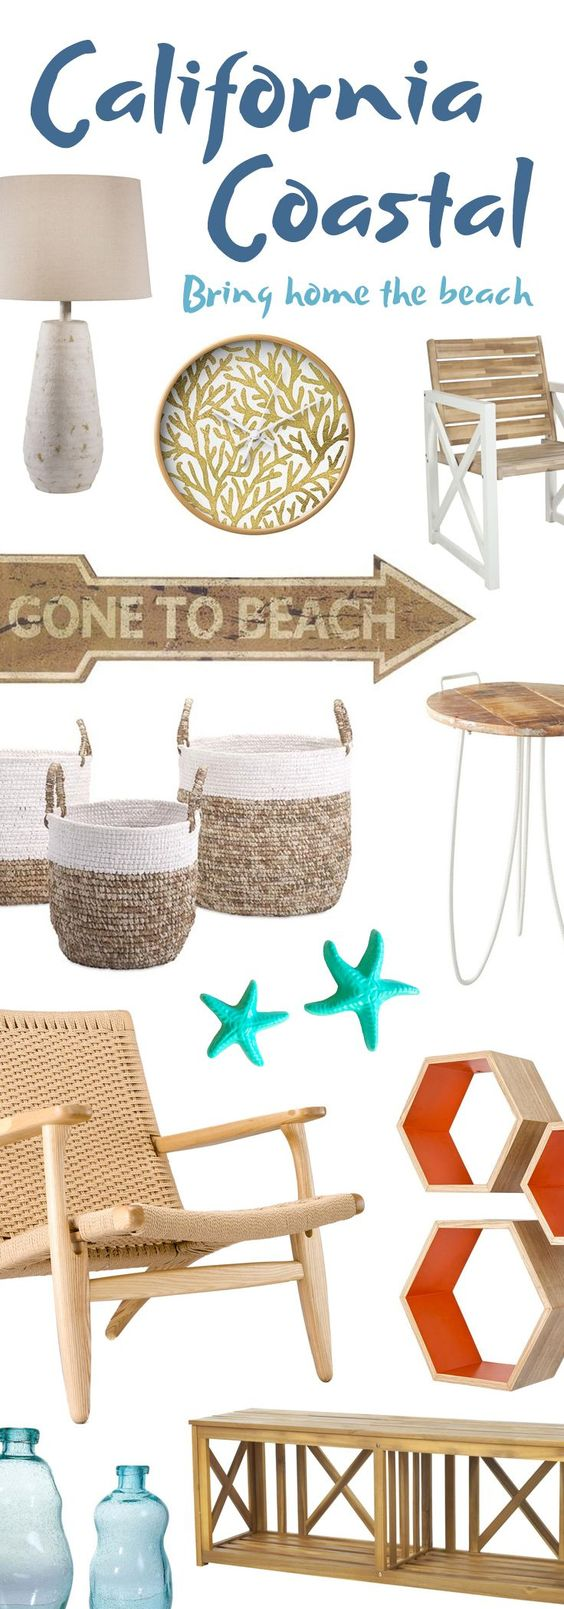 Furniture furniture collection and home decor on pinterest - Diy home decor ideas pinterest collection ...